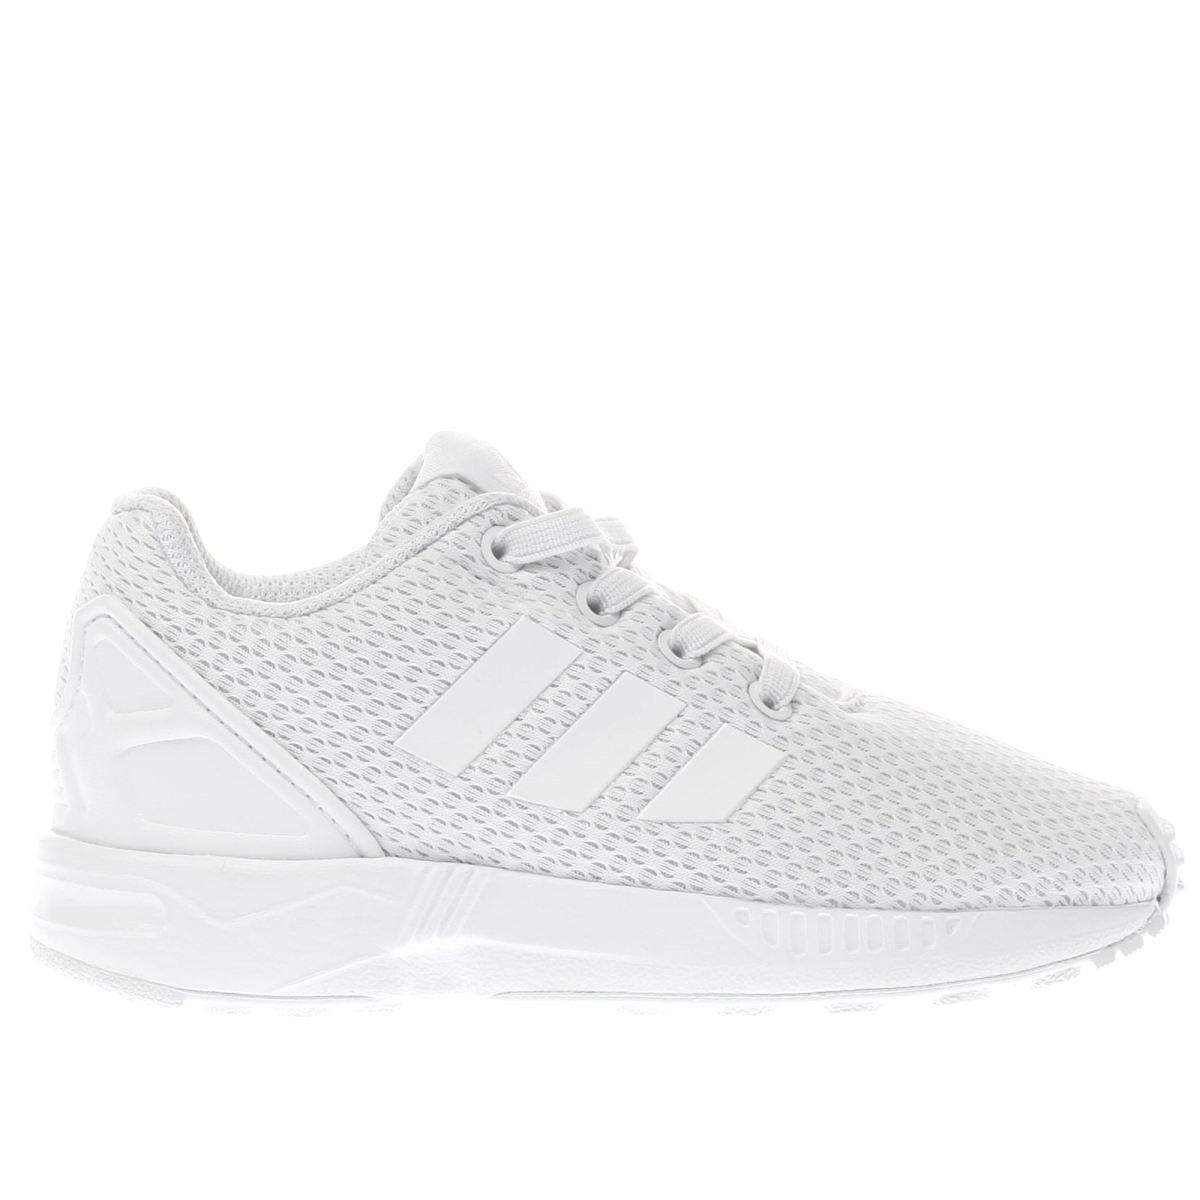 adidas white zx flux Boys Toddler Trainers